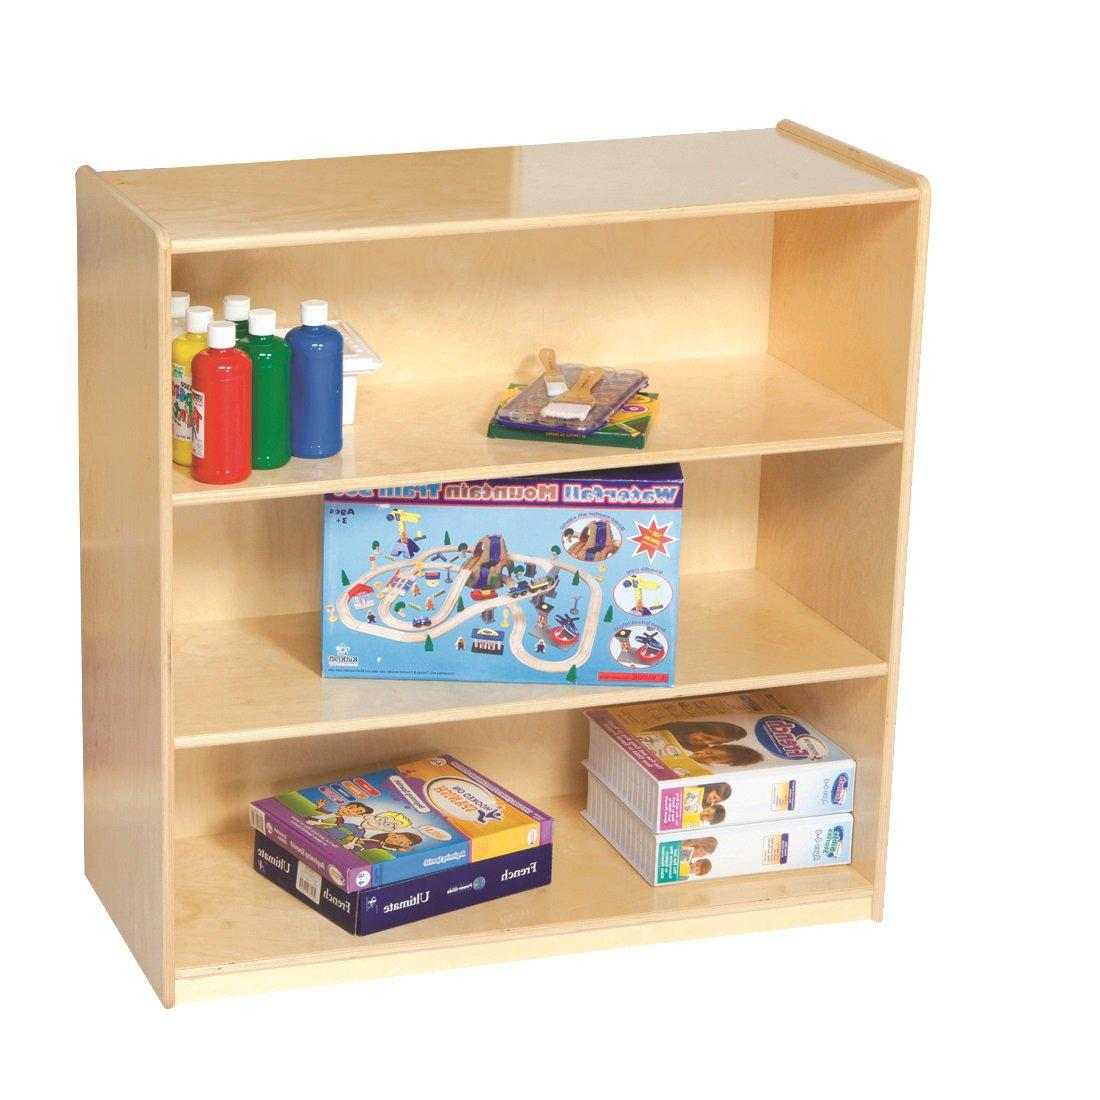 "Wood Designs 3-Shelf Bookshelf, 36-3/4""H"